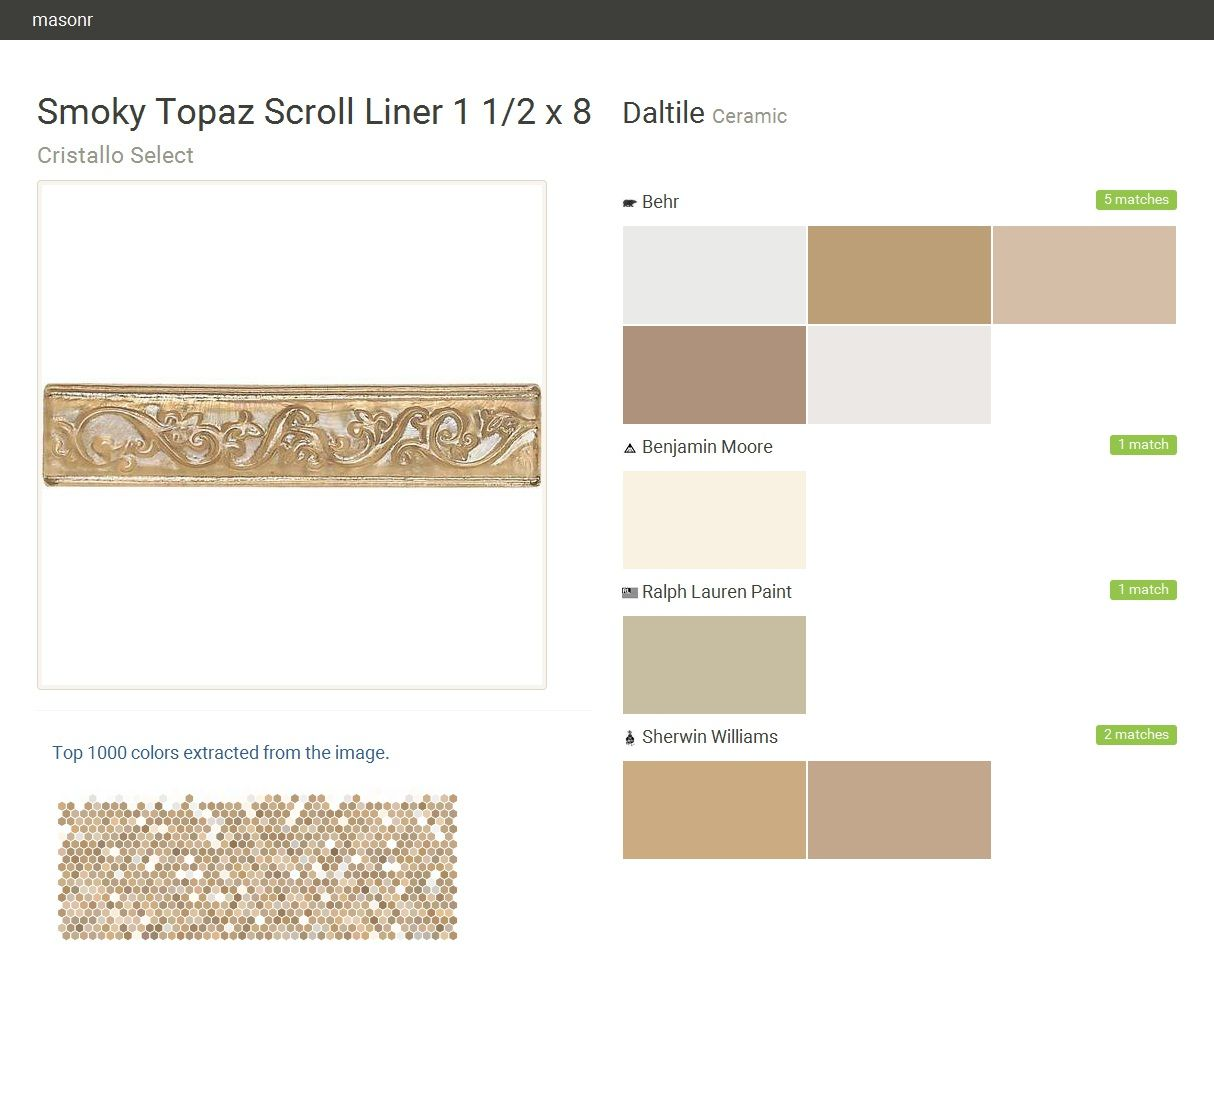 Smoky Topaz Scroll Liner 1 1/2 x 8. Cristallo Select. Ceramic. Daltile. Behr. Benjamin Moore. Ralph Lauren Paint. Sherwin Williams.  Click the gray Visit button to see the matching paint names.